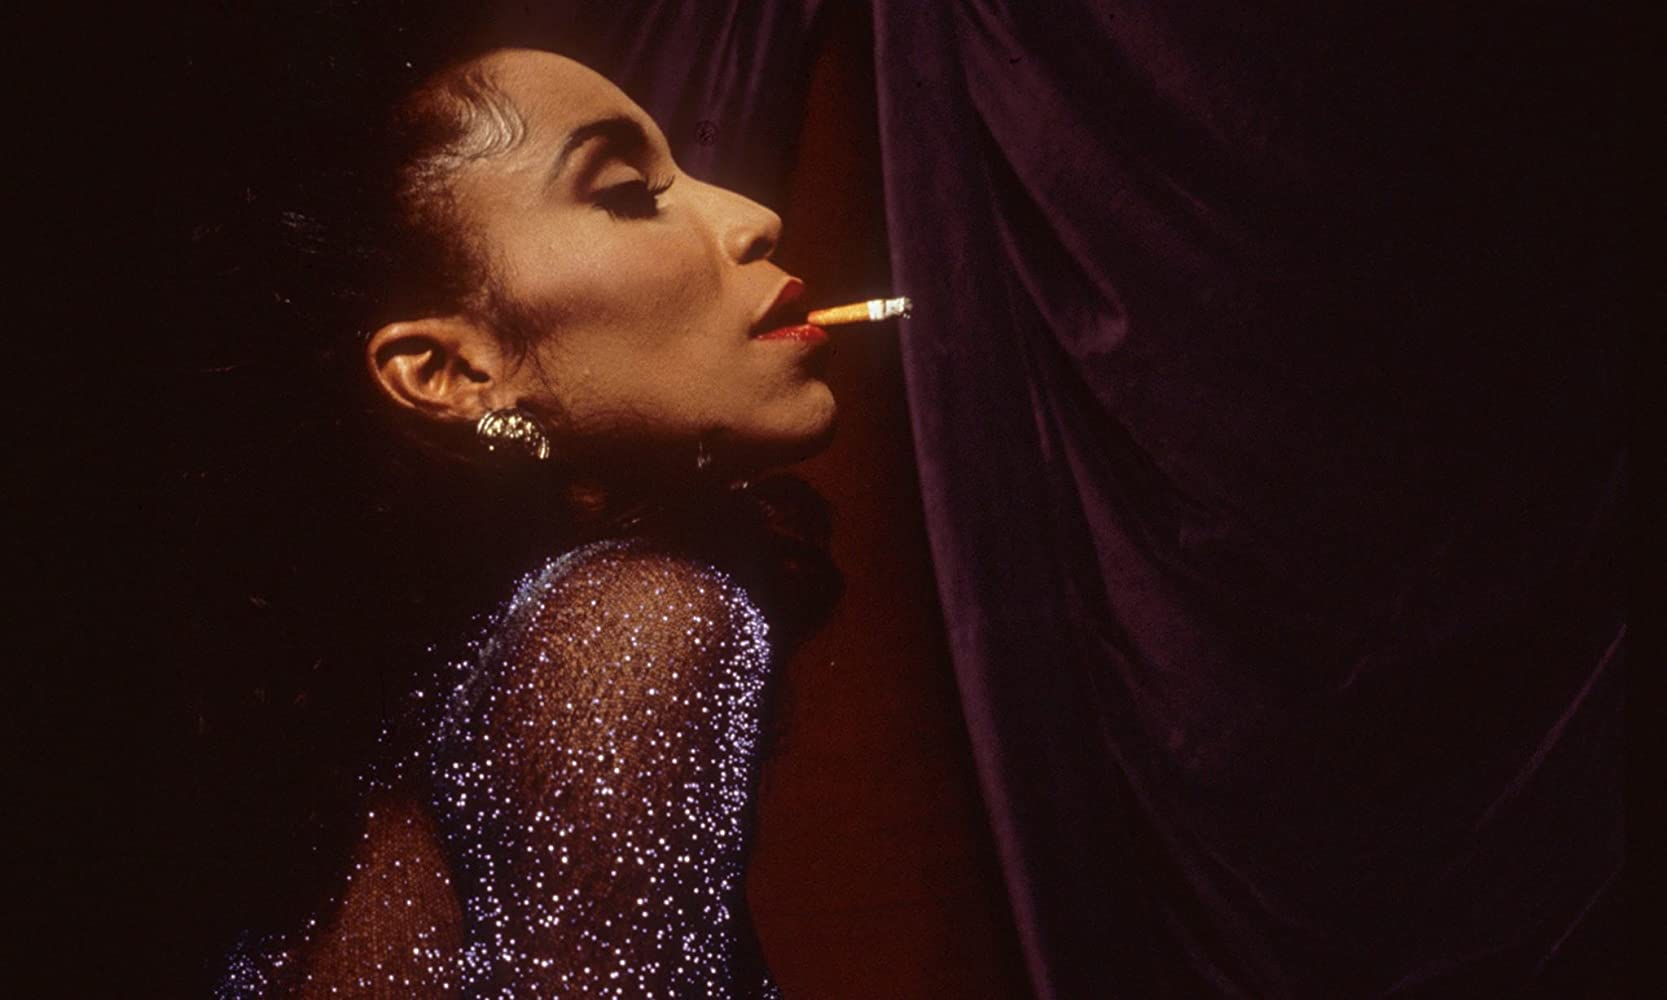 Octavia St. Laurent in Paris Is Burning (1990)